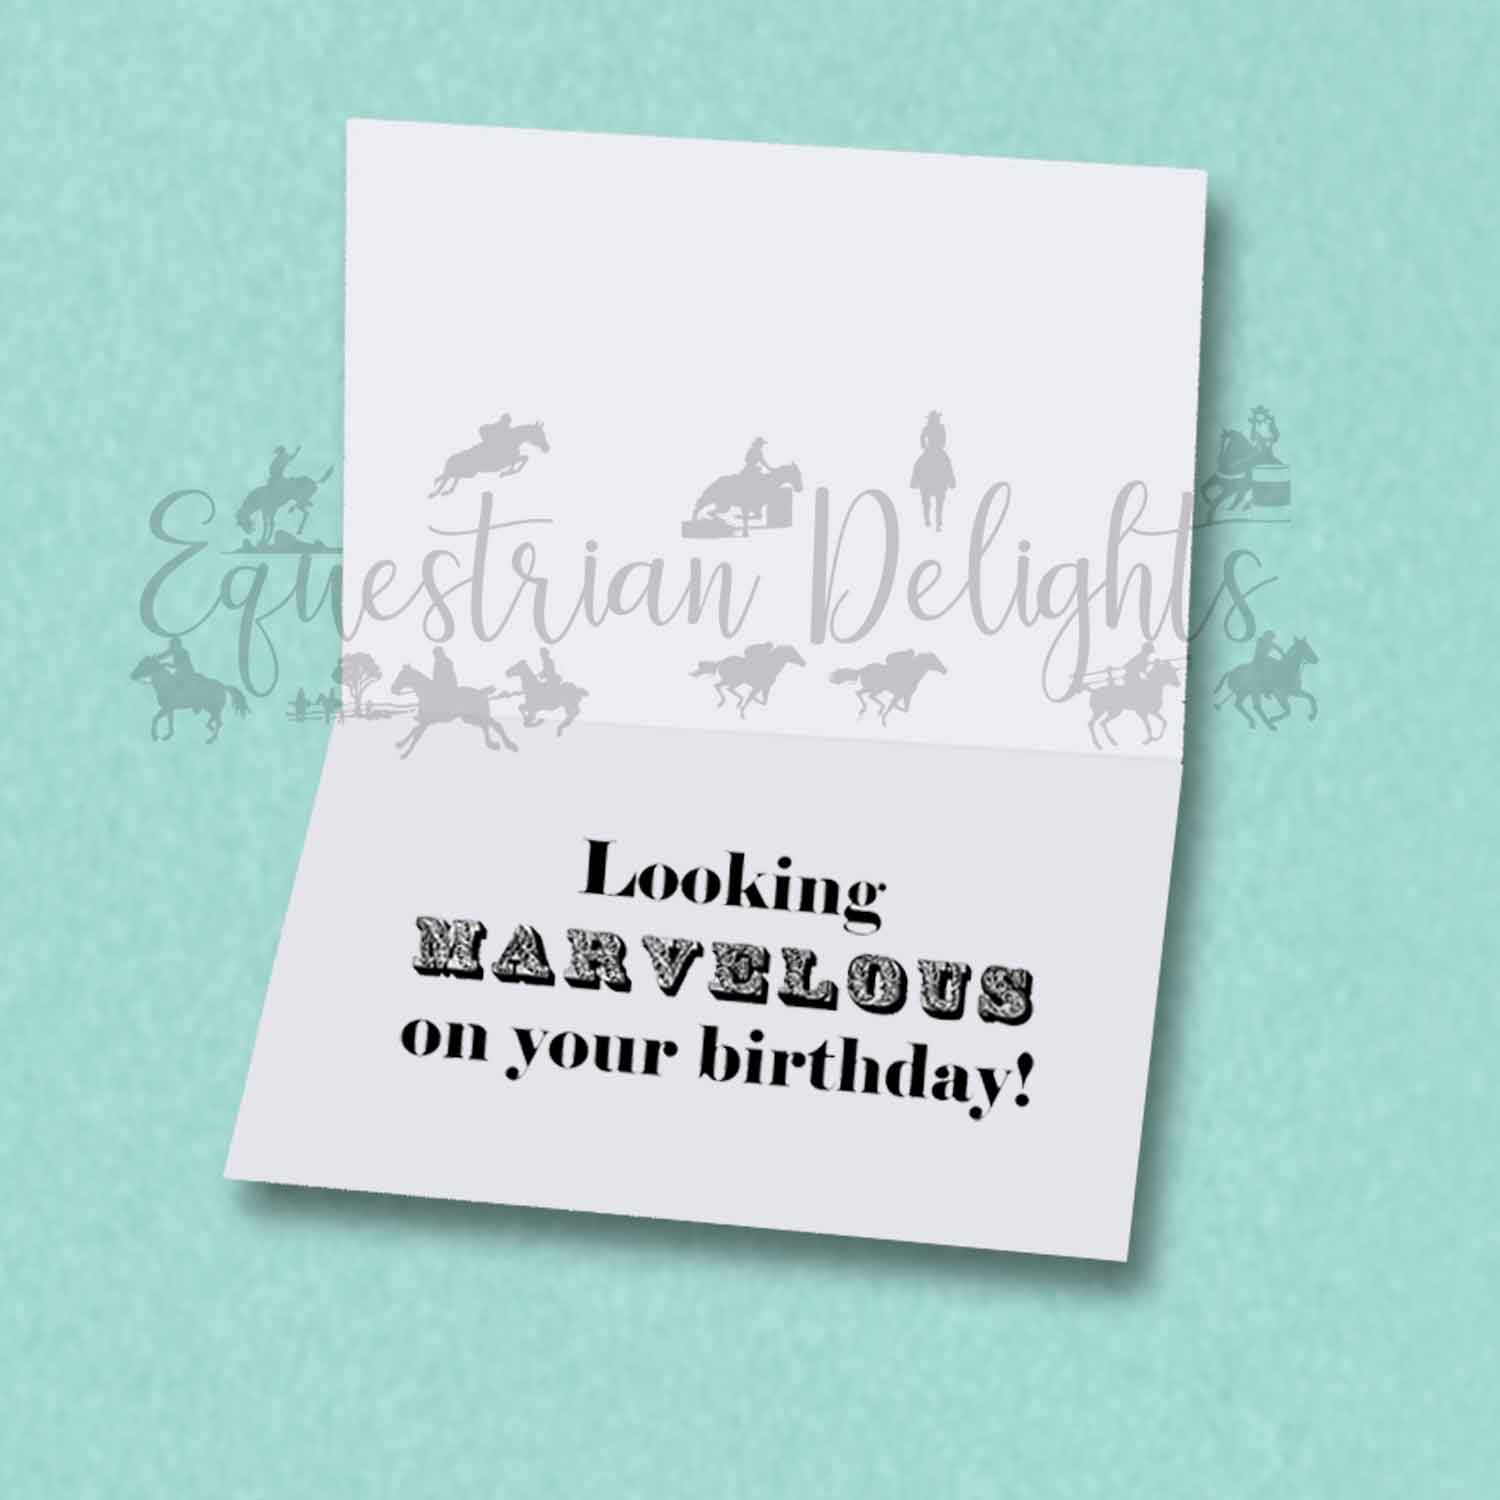 Birthday Card For Horse Lovers, Arabian Birthday Card